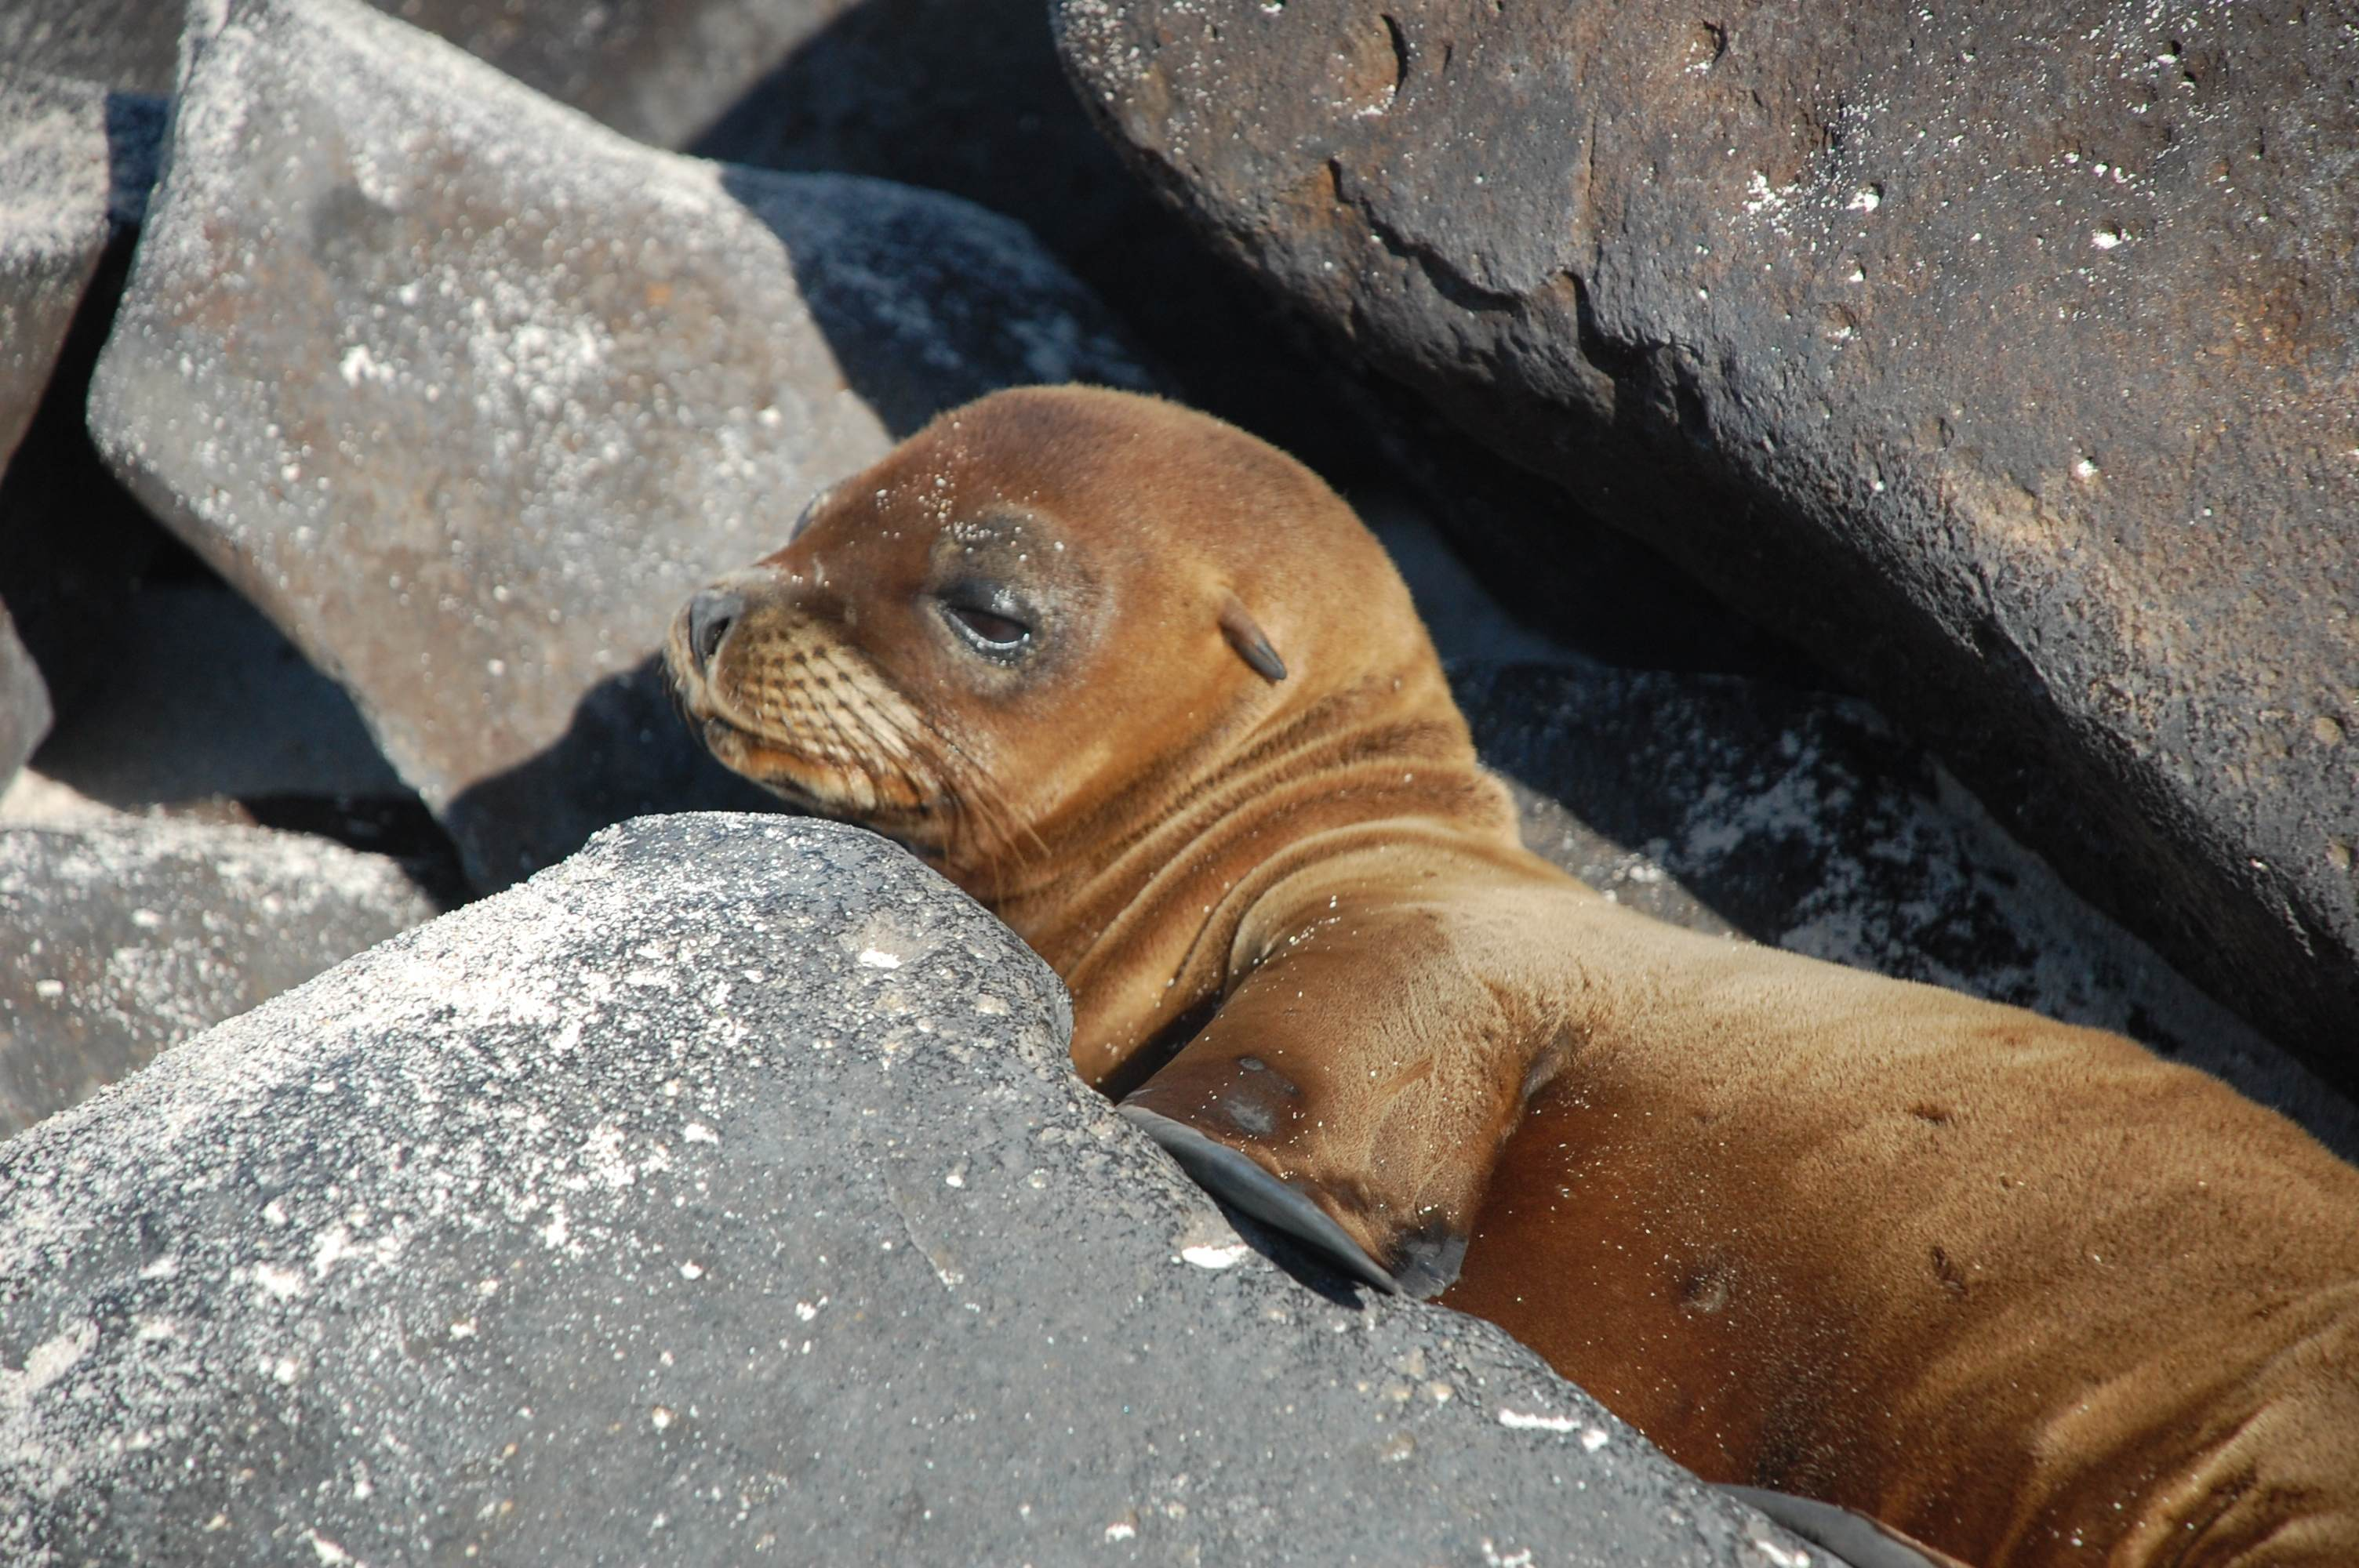 Baby Galapagos Sea Lion nestled in the warm rocks.